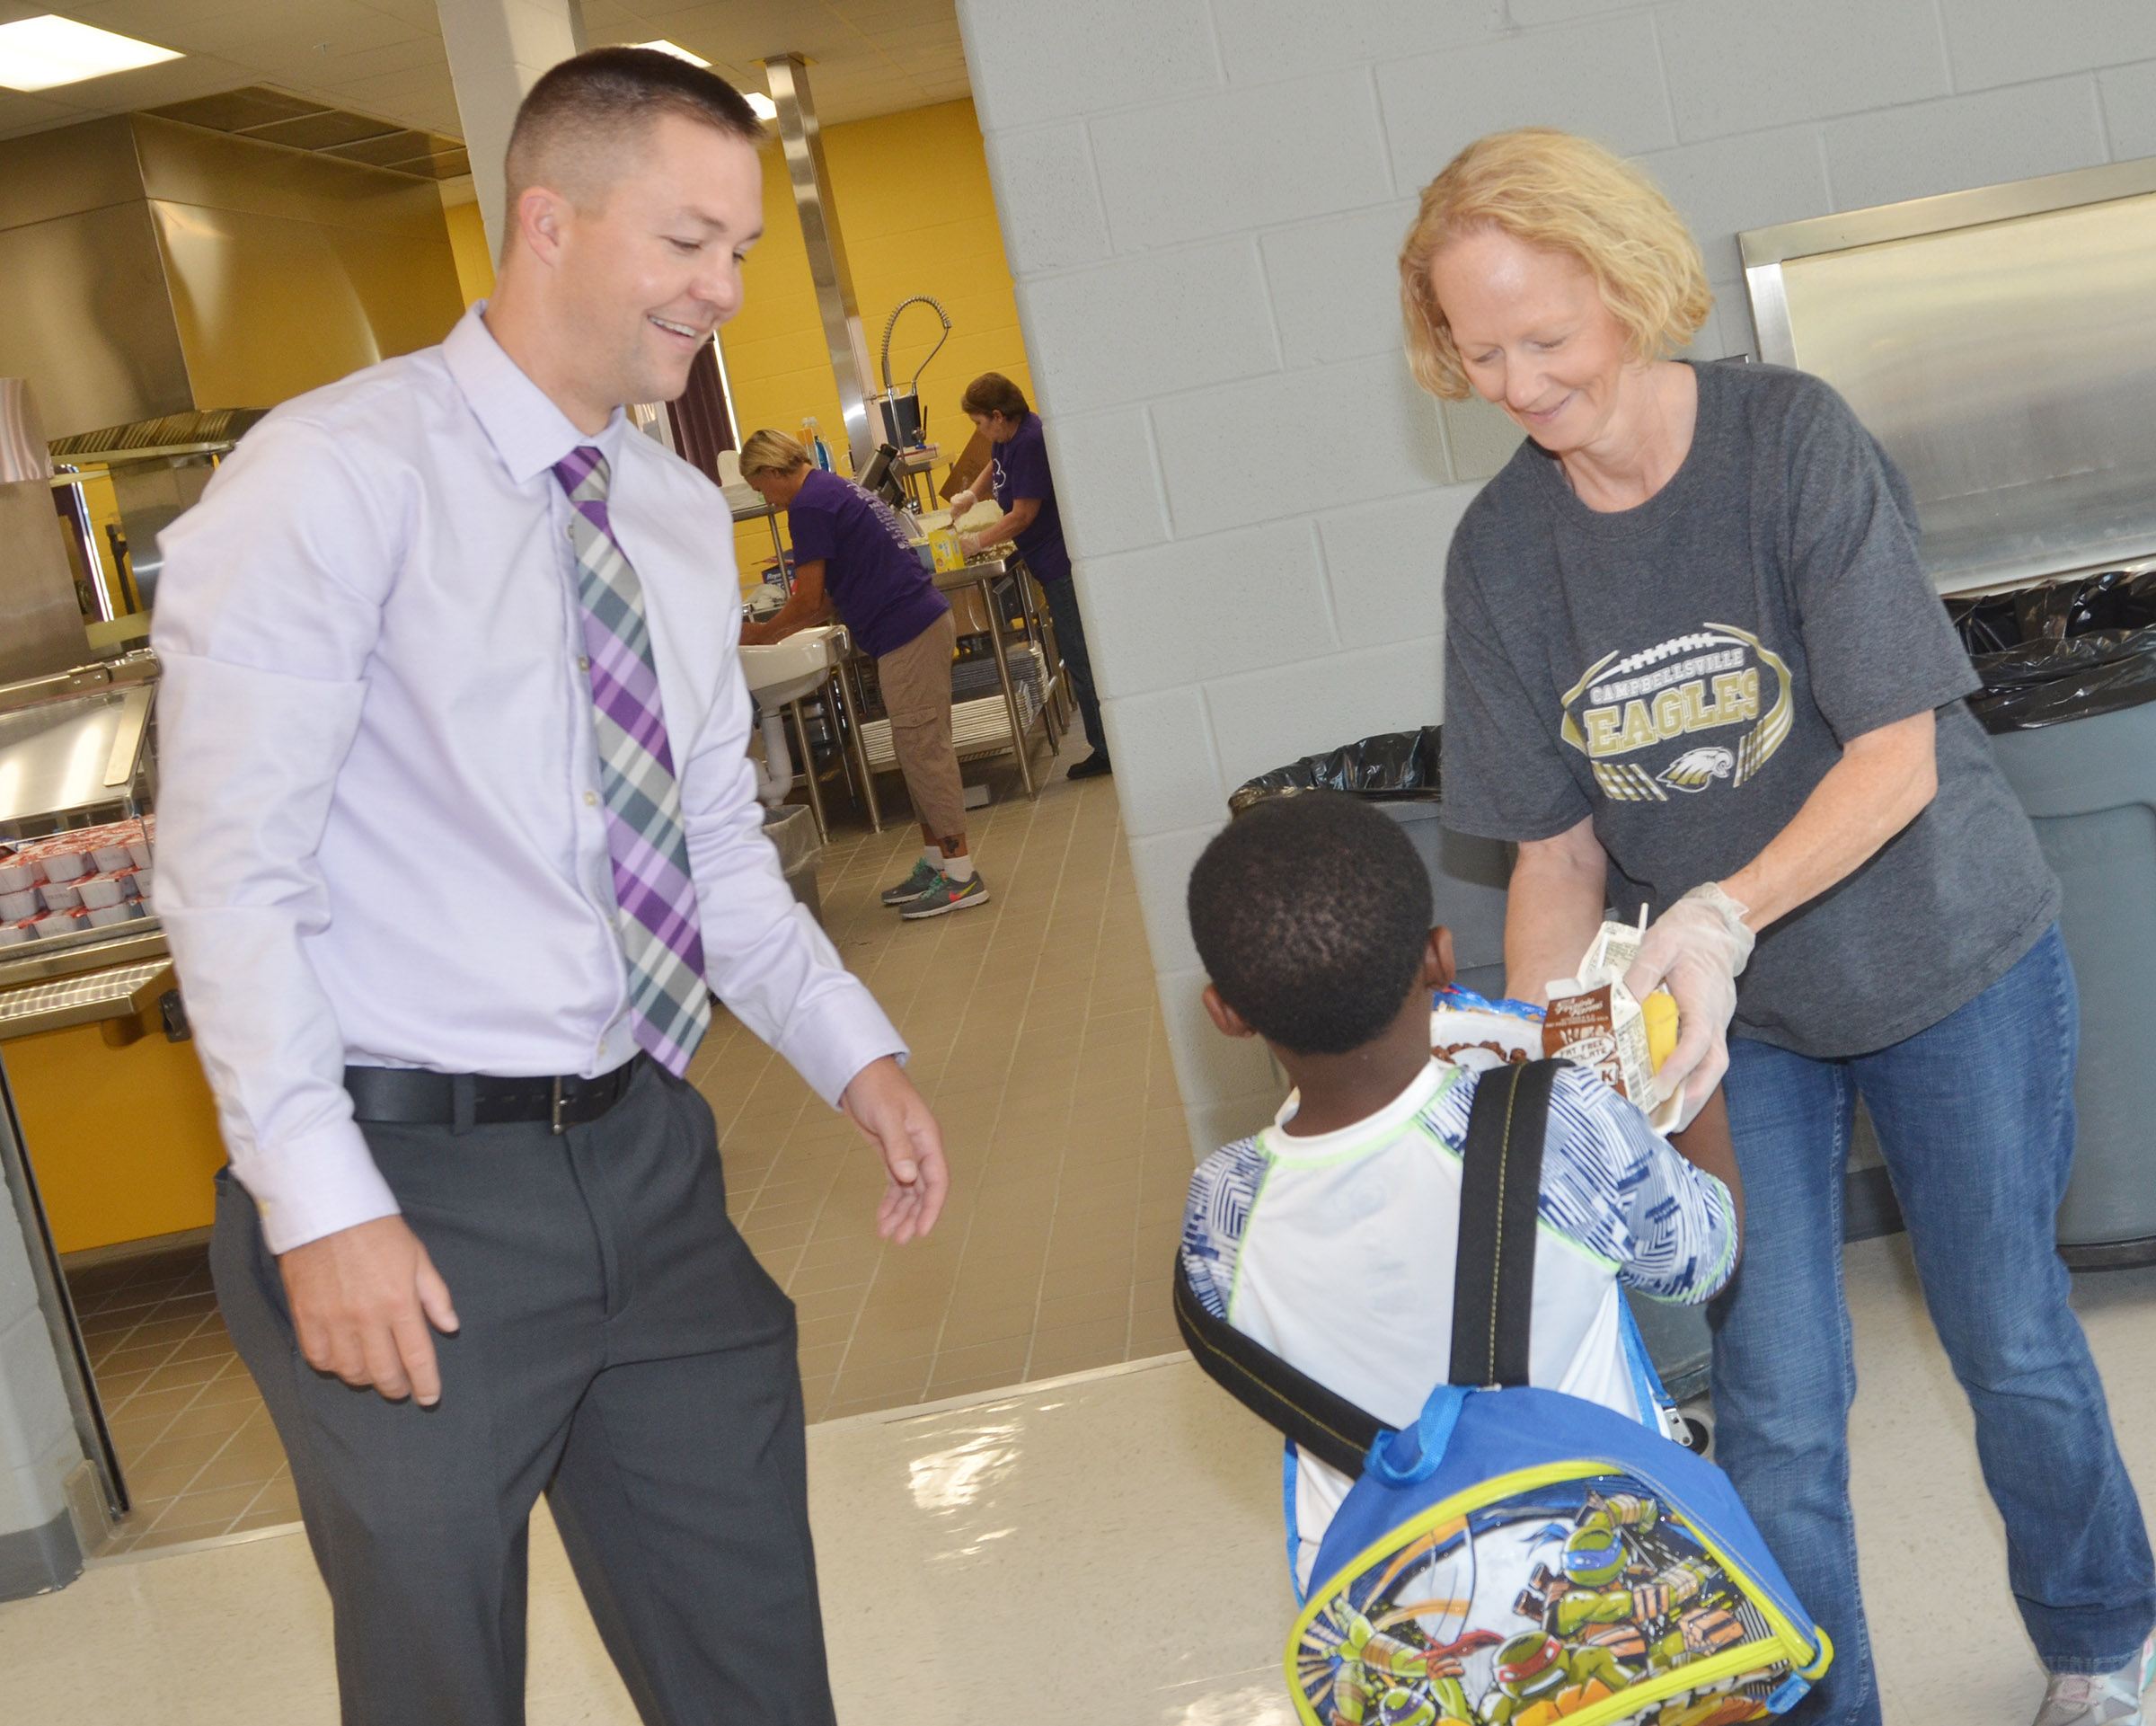 CES Assistant Principal Weston Jones and CIS Food Service Manager Lois Lacy help kindergartener LaTayvion Brown throw away his breakfast tray.